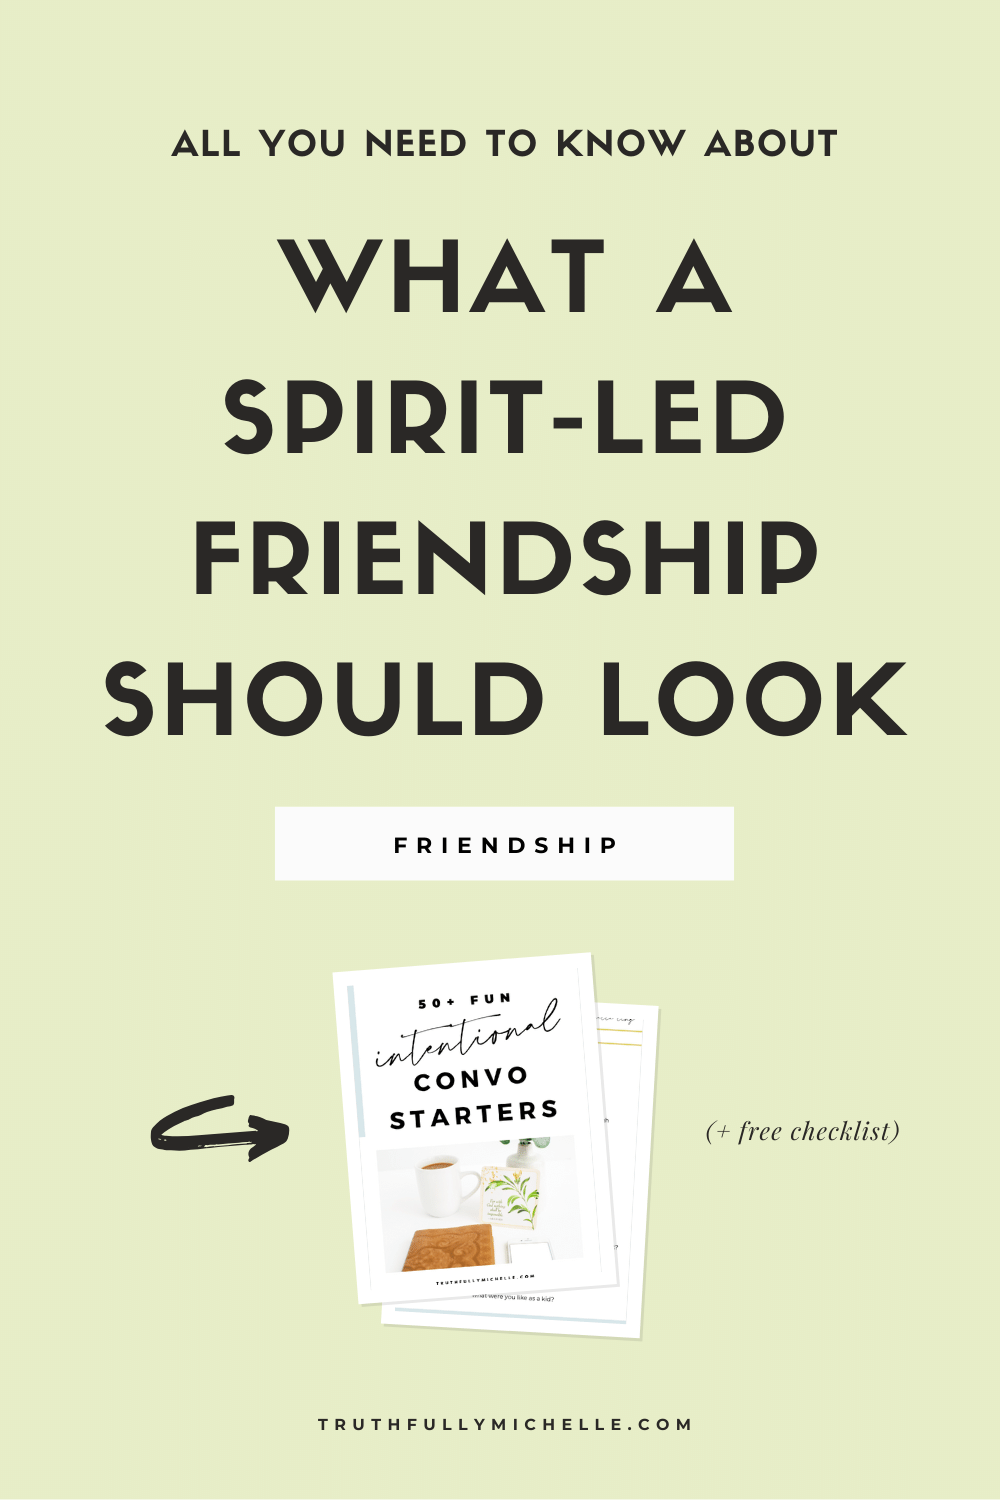 characteristics of a godly friend, how to be a godly friend, what is a godly friend, being a godly friend, building godly friendships, godly friendship woman, christian friendships, christian friends